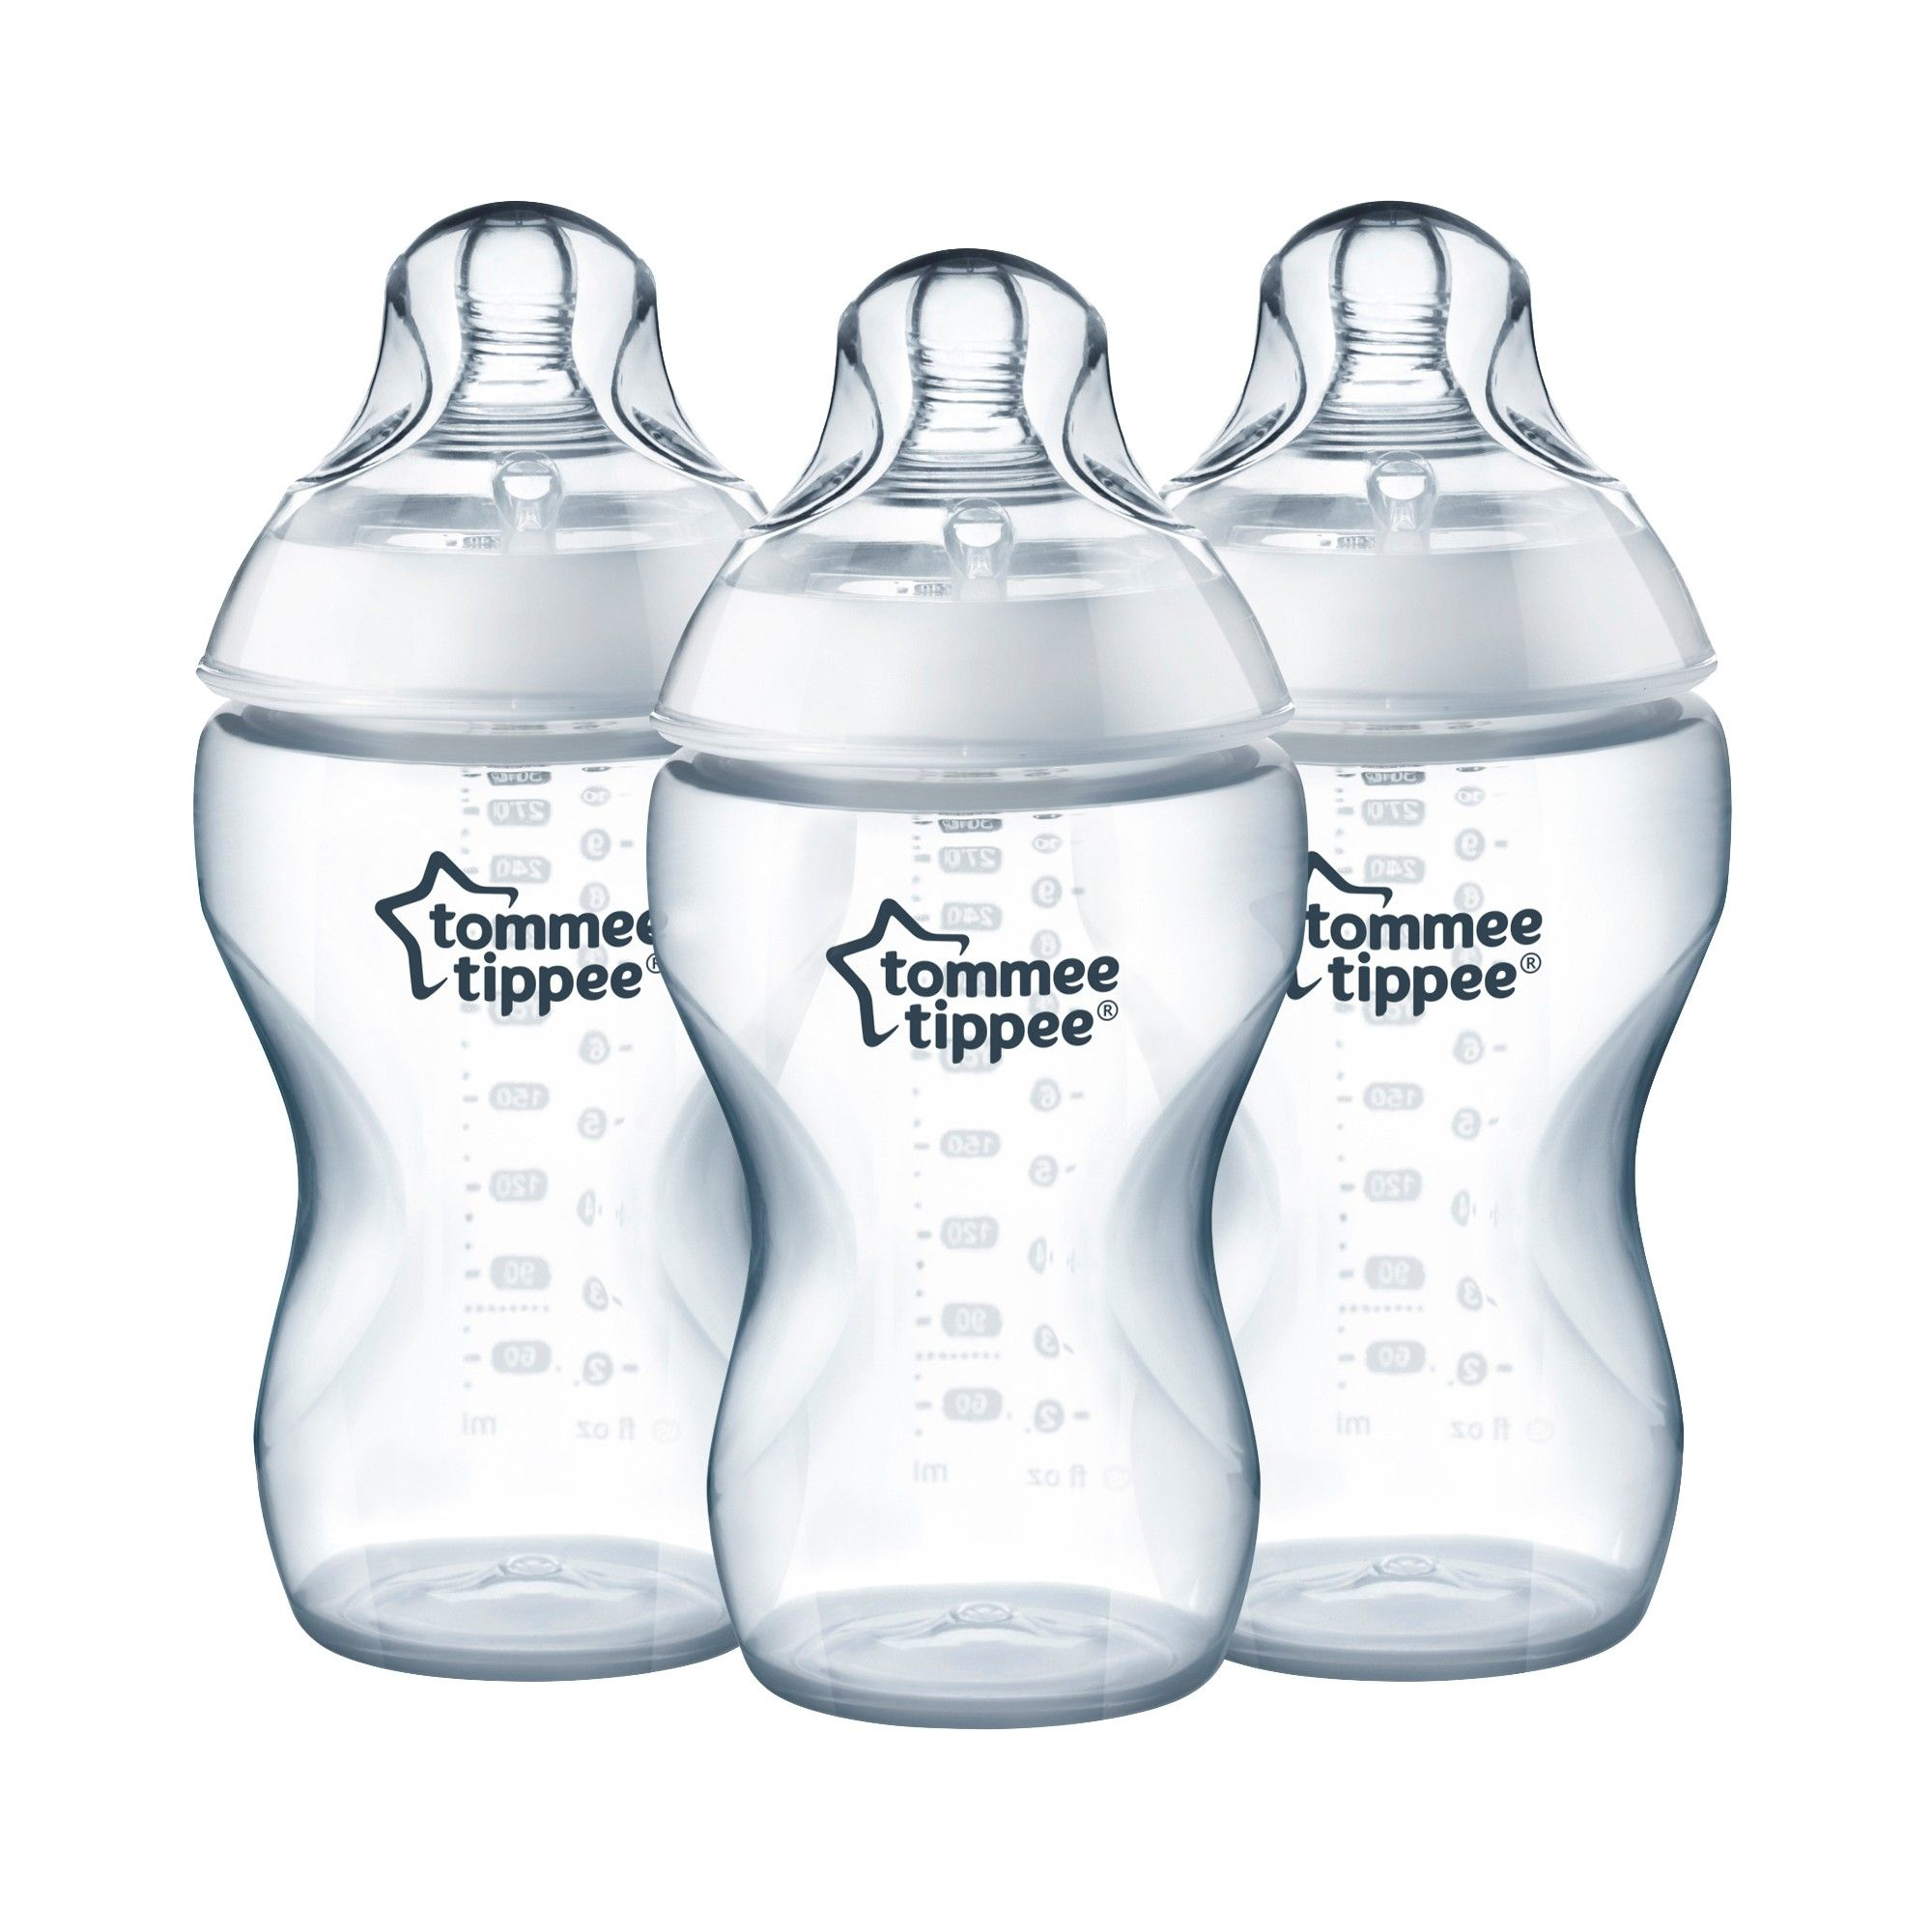 Tommee Tippee Closer To Nature Added Cereal Bottle 3pk 11oz Clear Products Baby Bottles Bottle Feeding Bottle